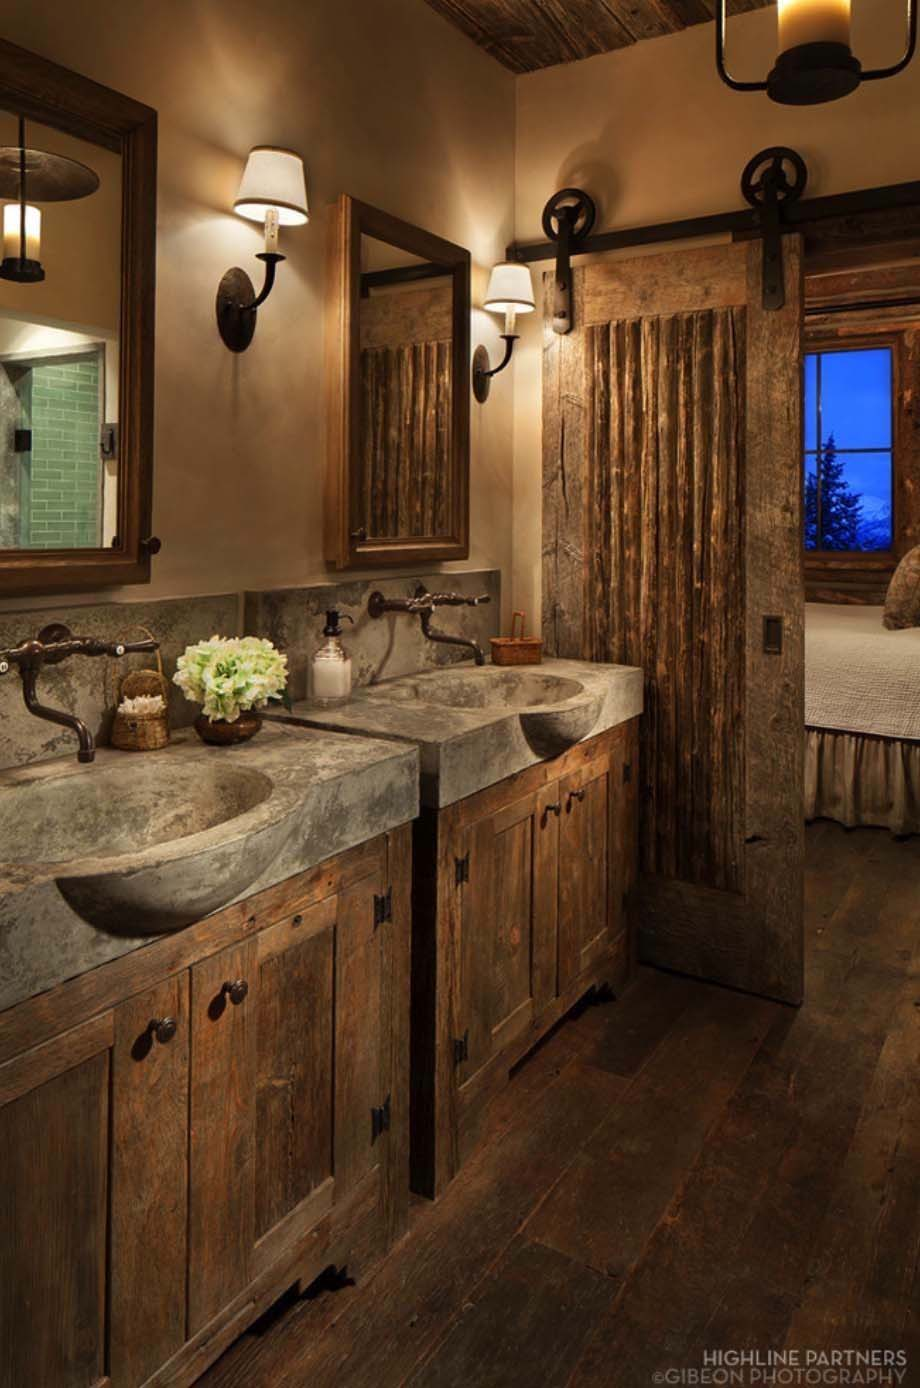 Rustic Bathroom D cor with Concrete Sinks and Barn Door 31 Best Design Decor Ideas for 2018